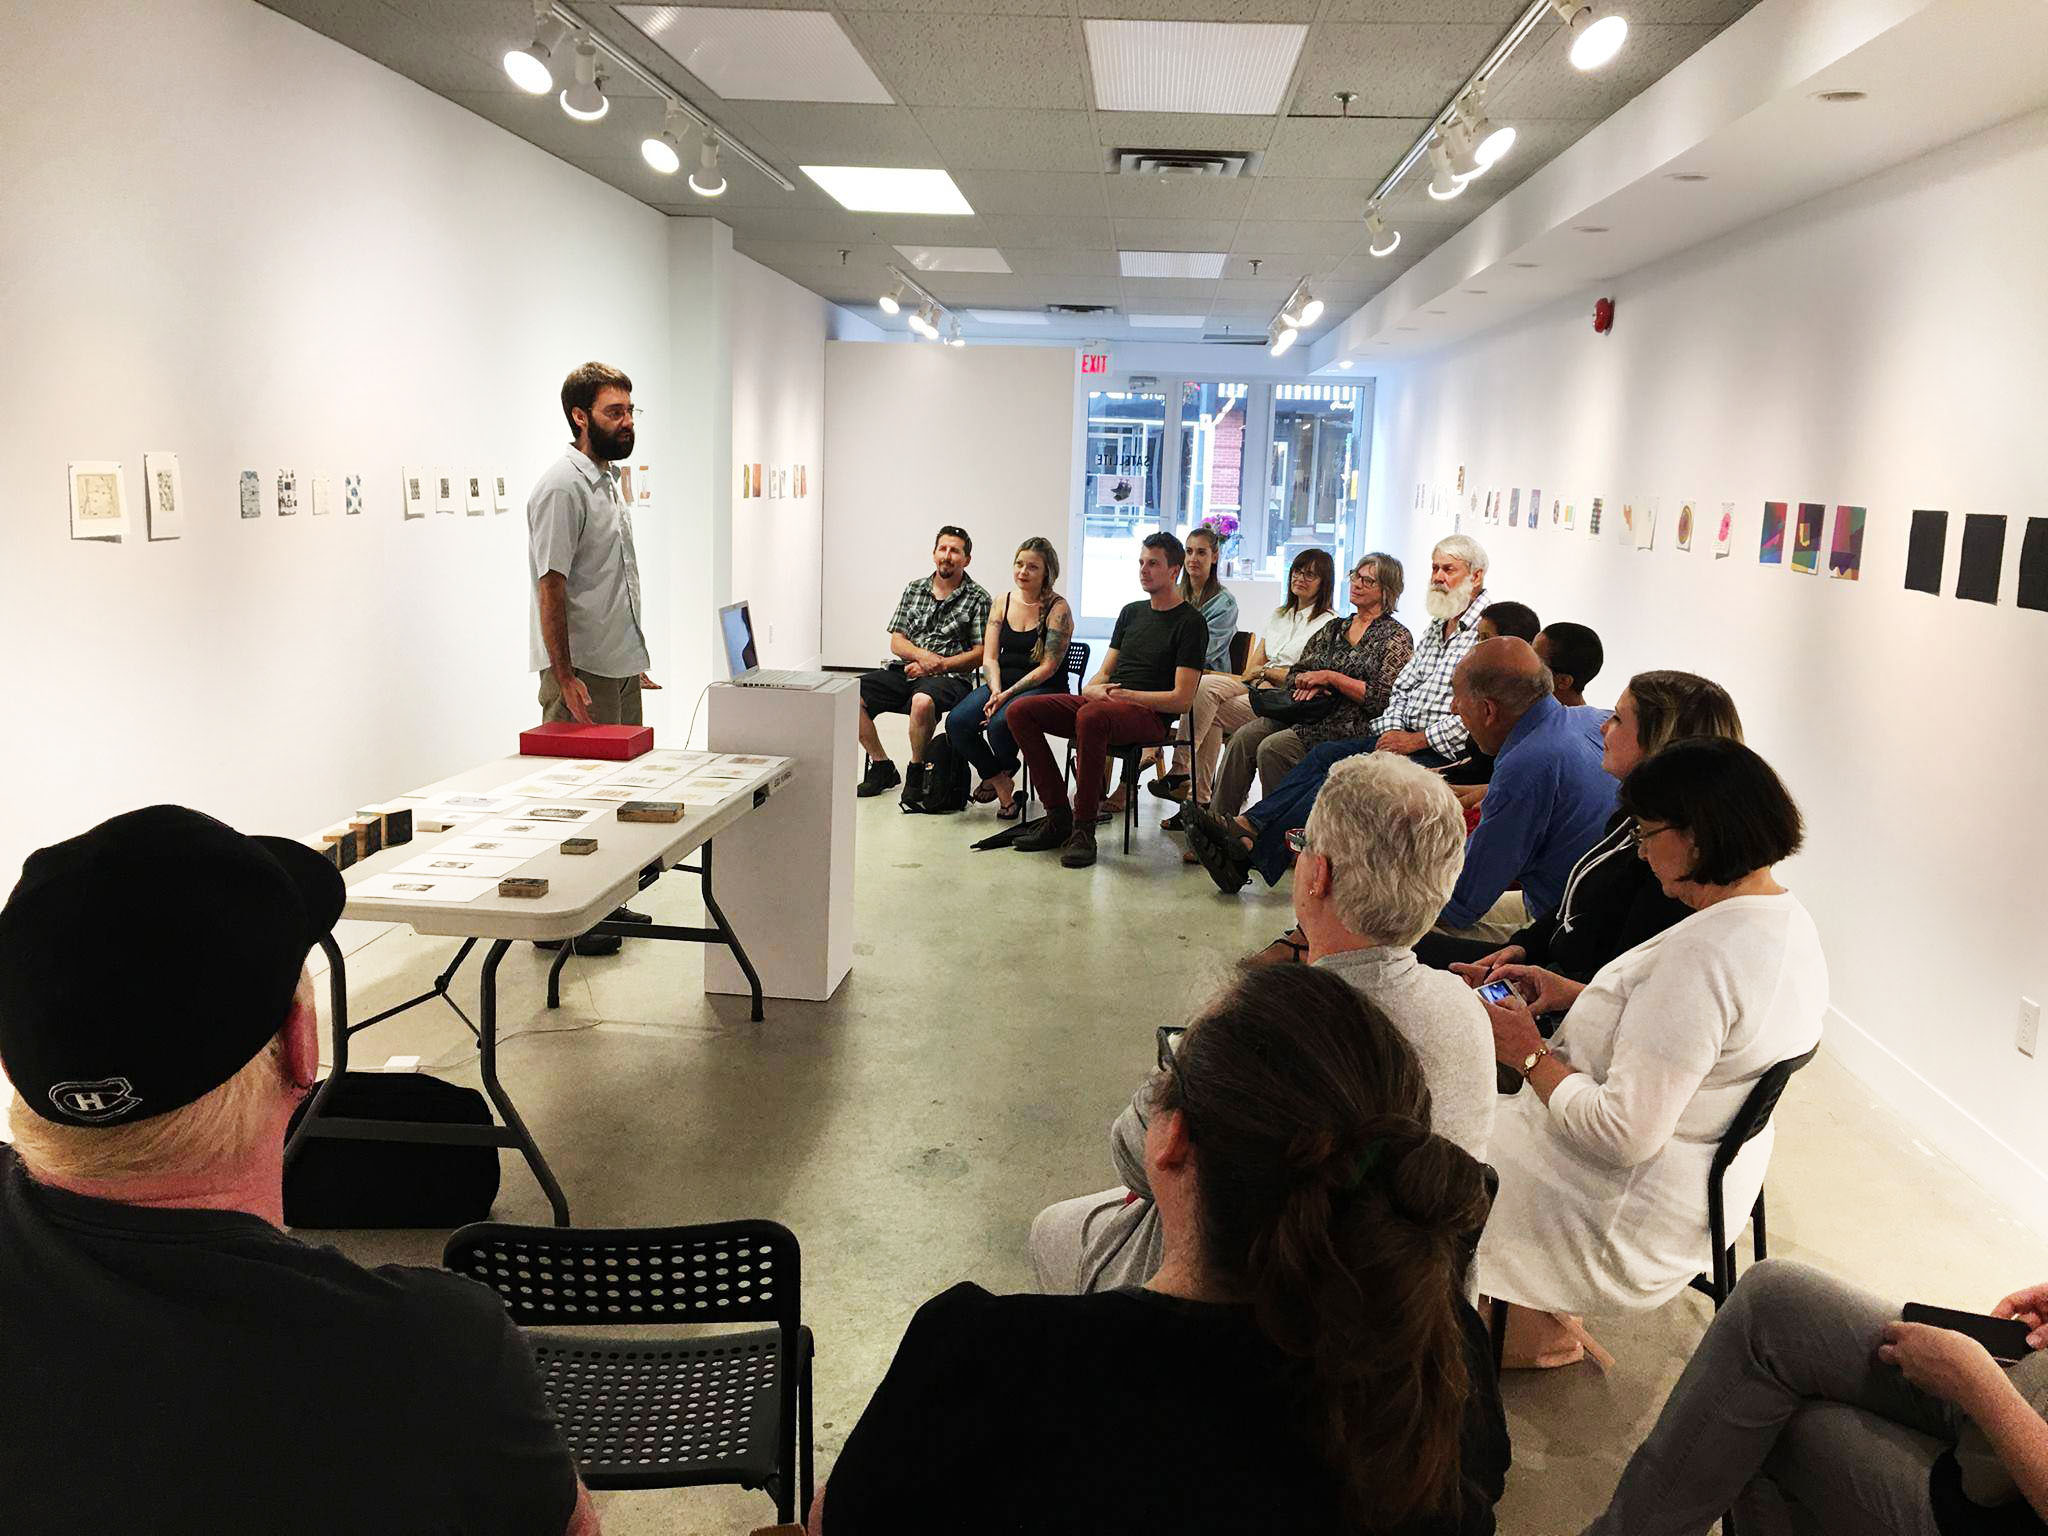 Eric Mummery artist talk at Satellite Project Space - Thursday June 29th 2017